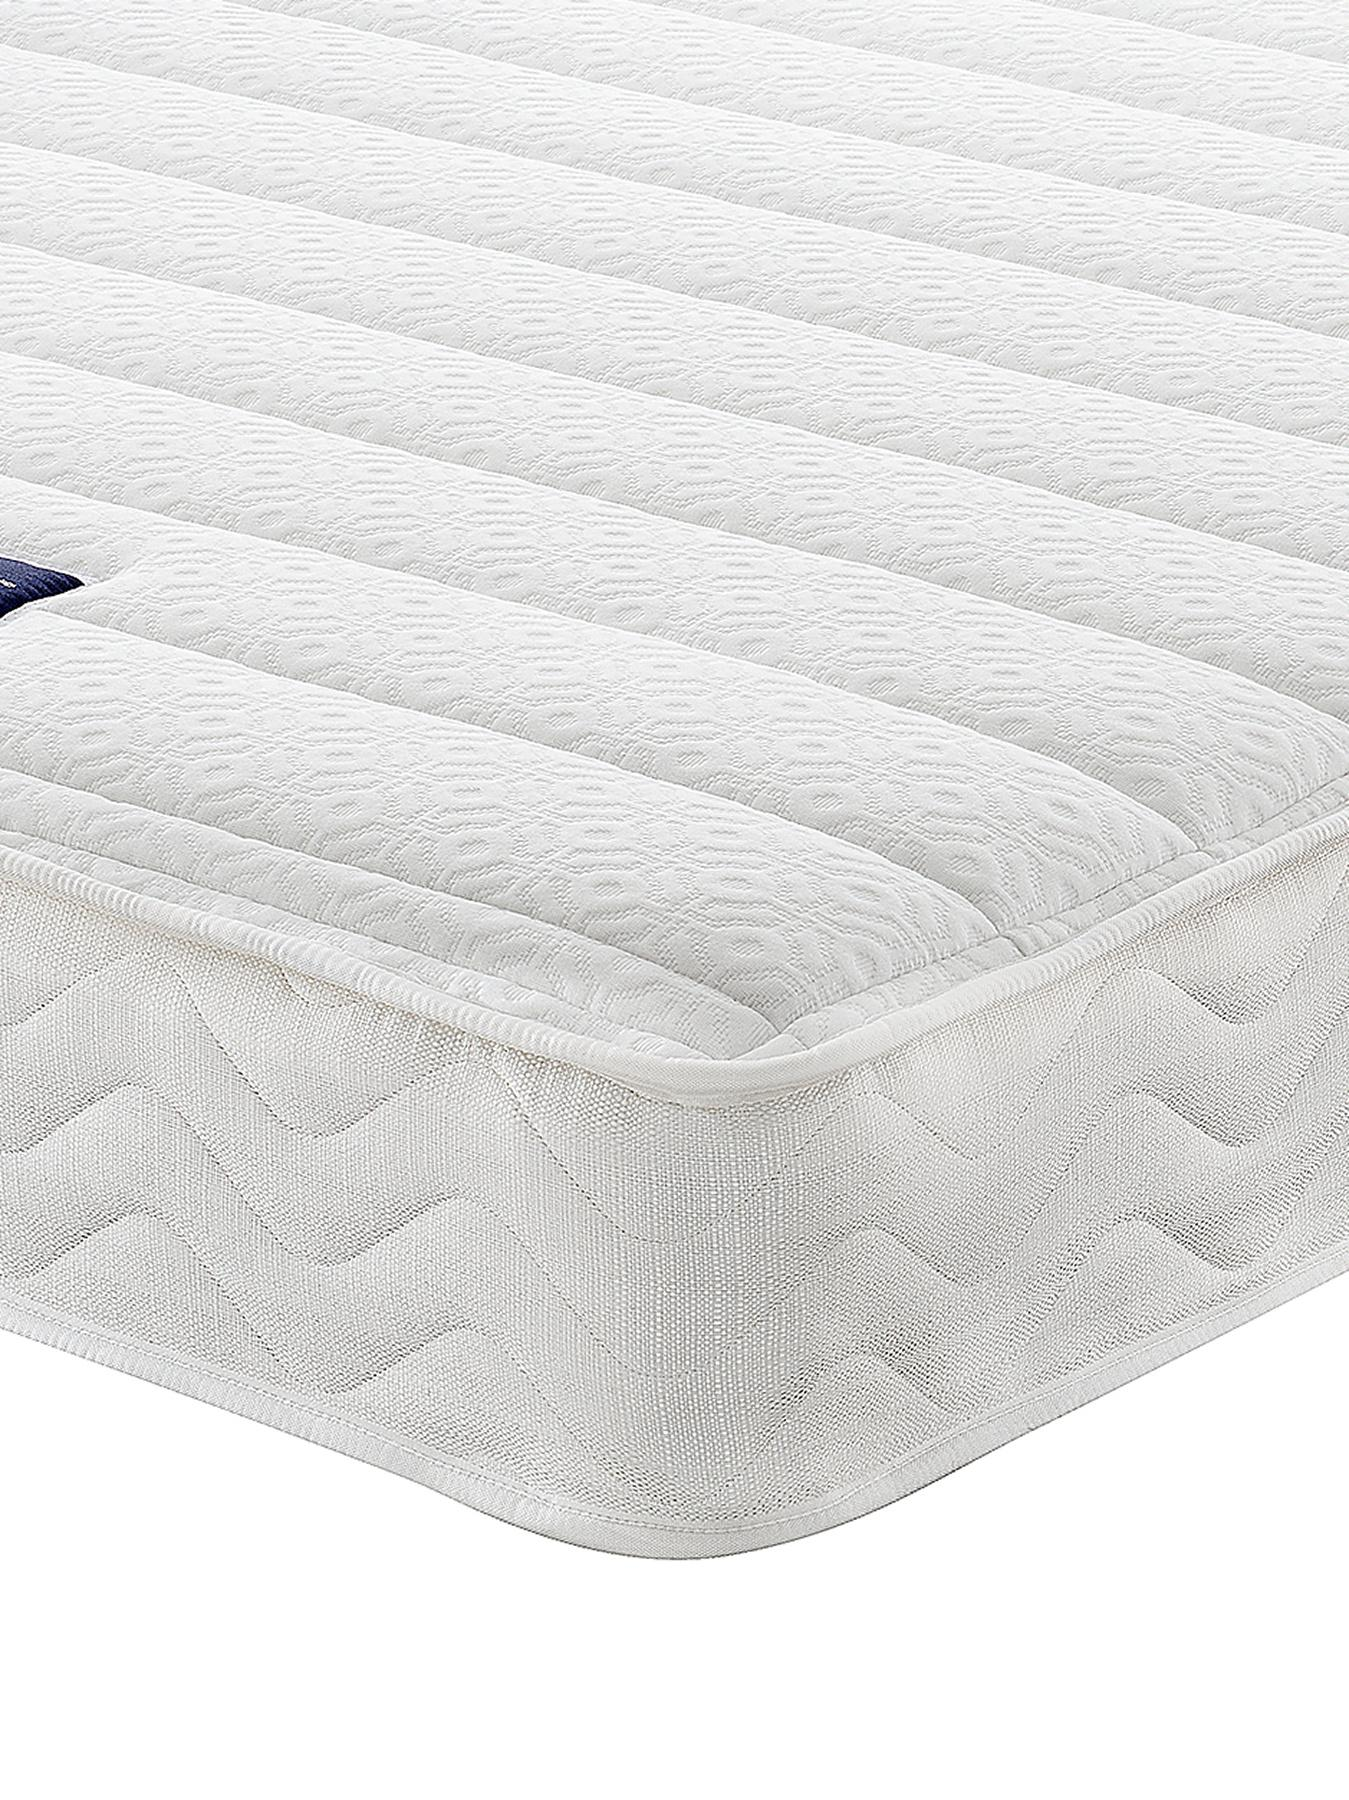 Silentnight Miracoil Celine Memory Mattress